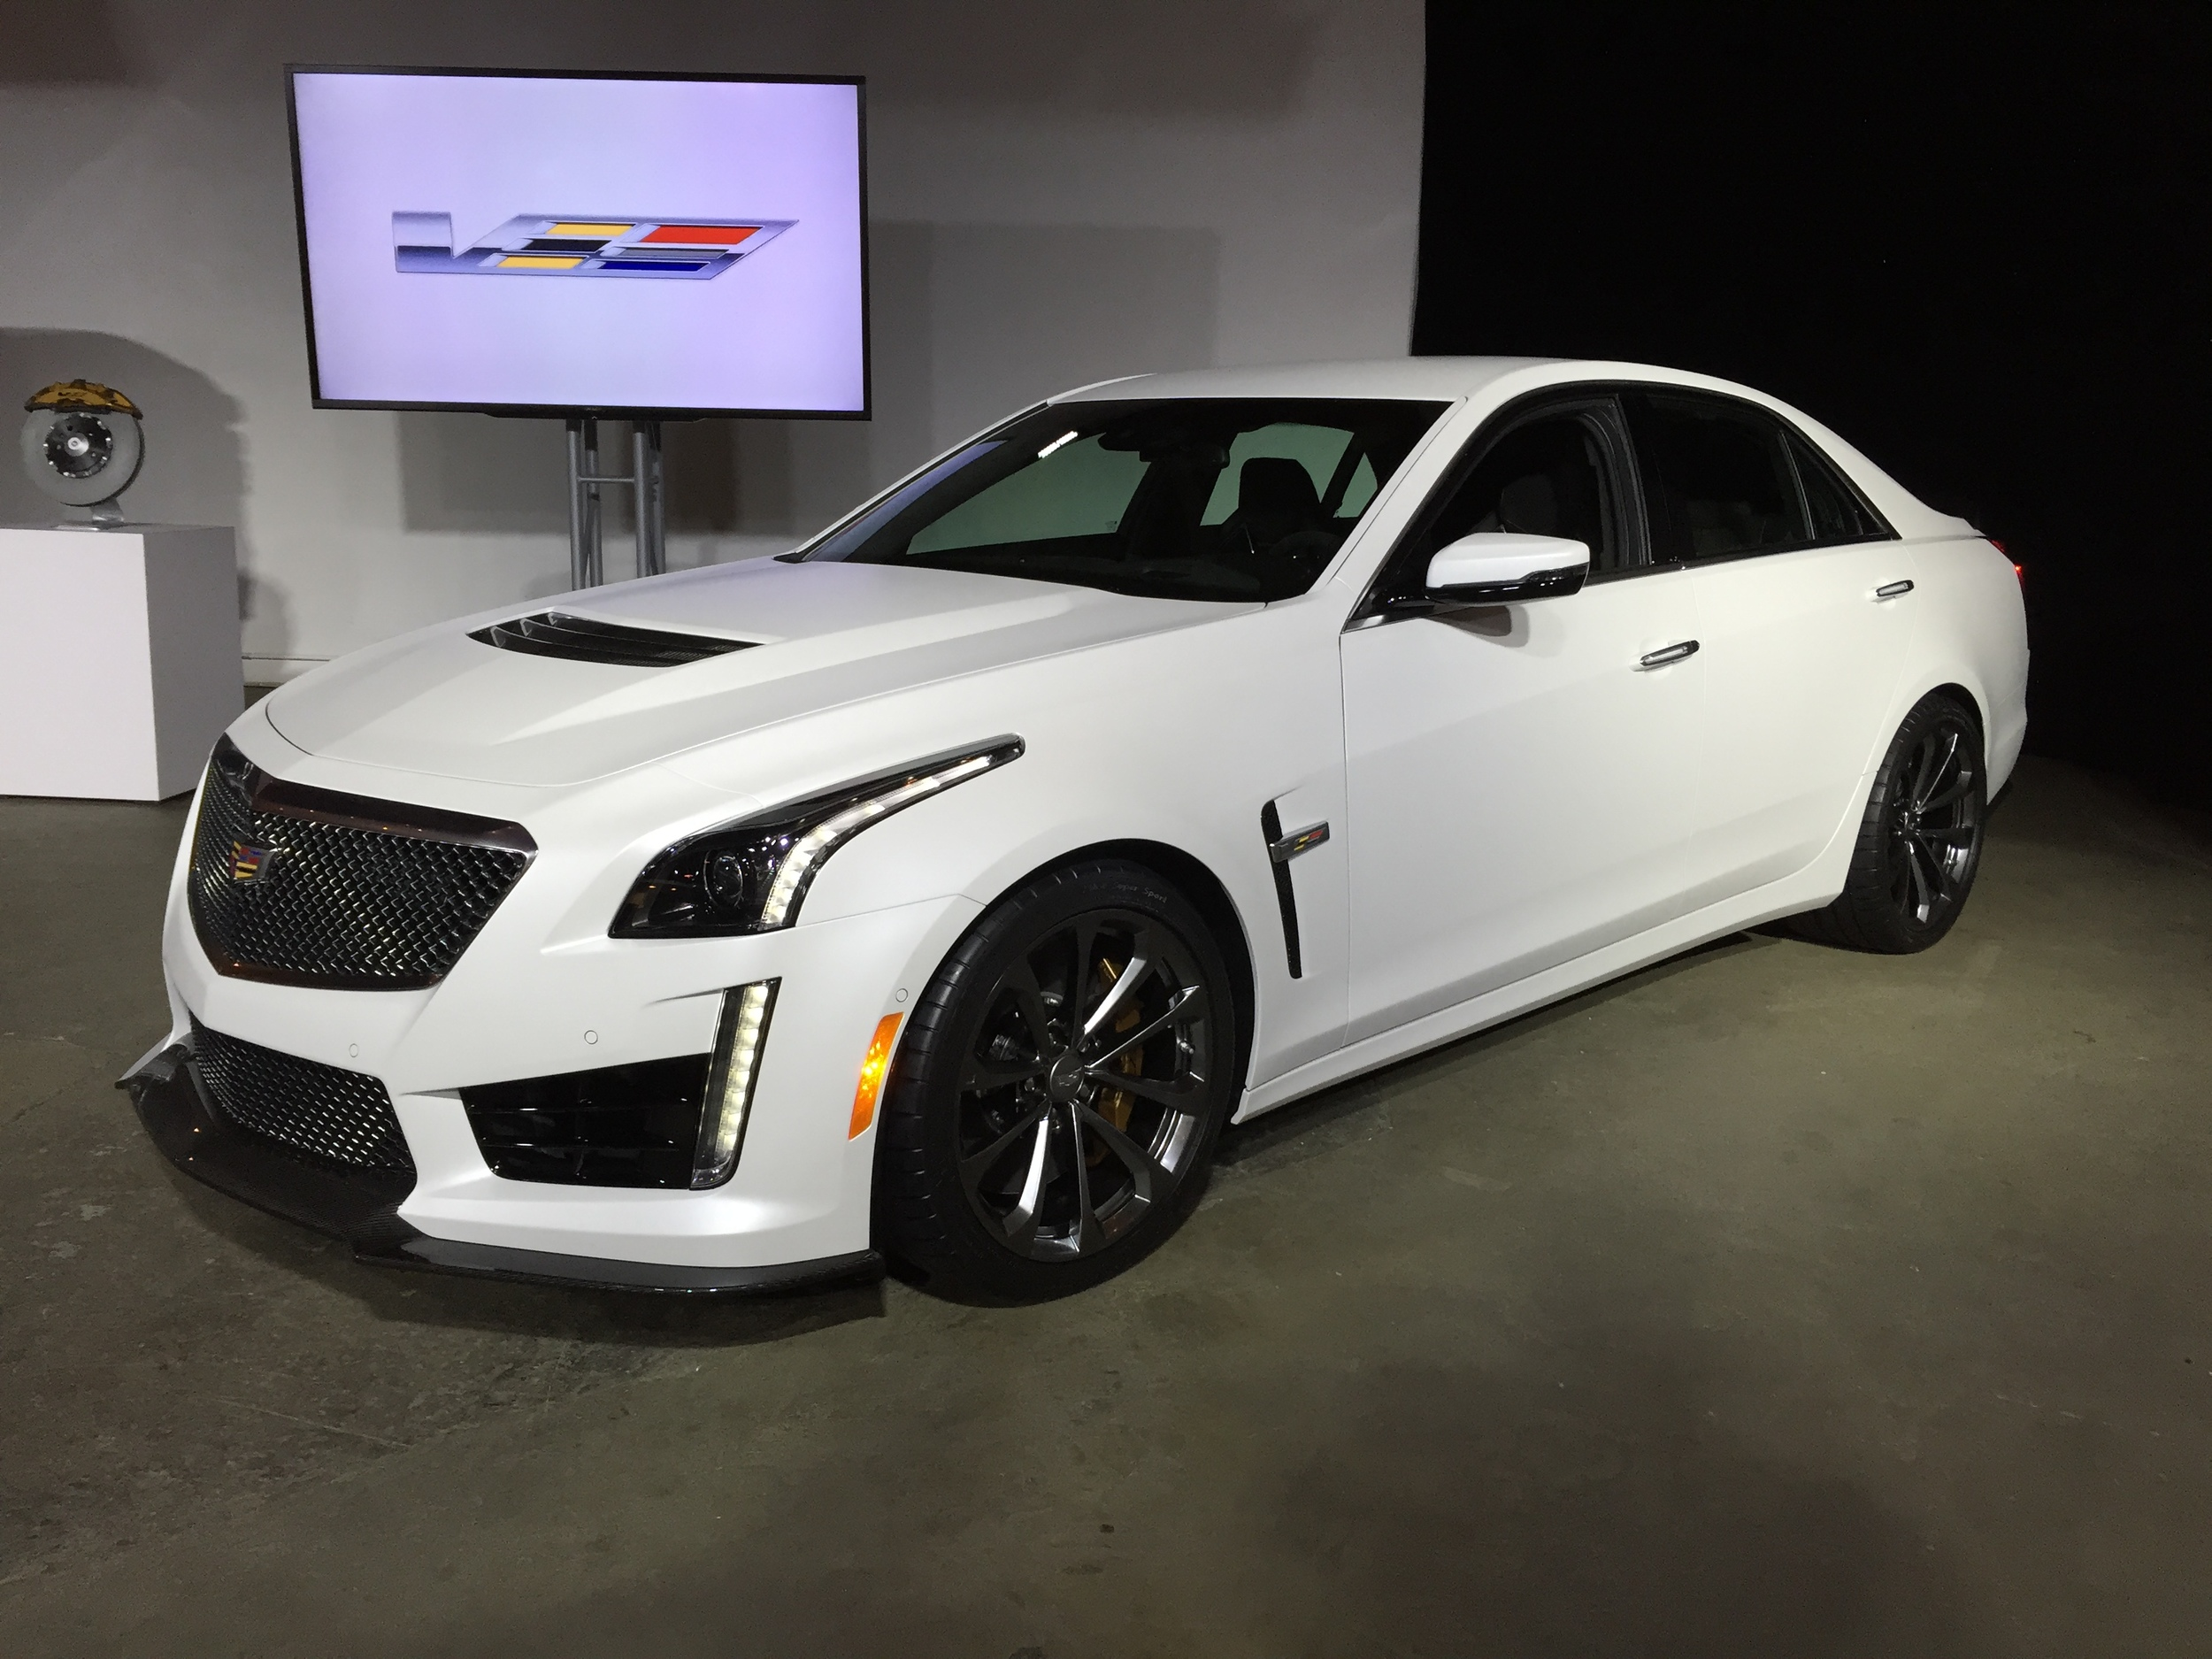 cts cadillac sport pictures v information used specs wagon sale for wallpaper